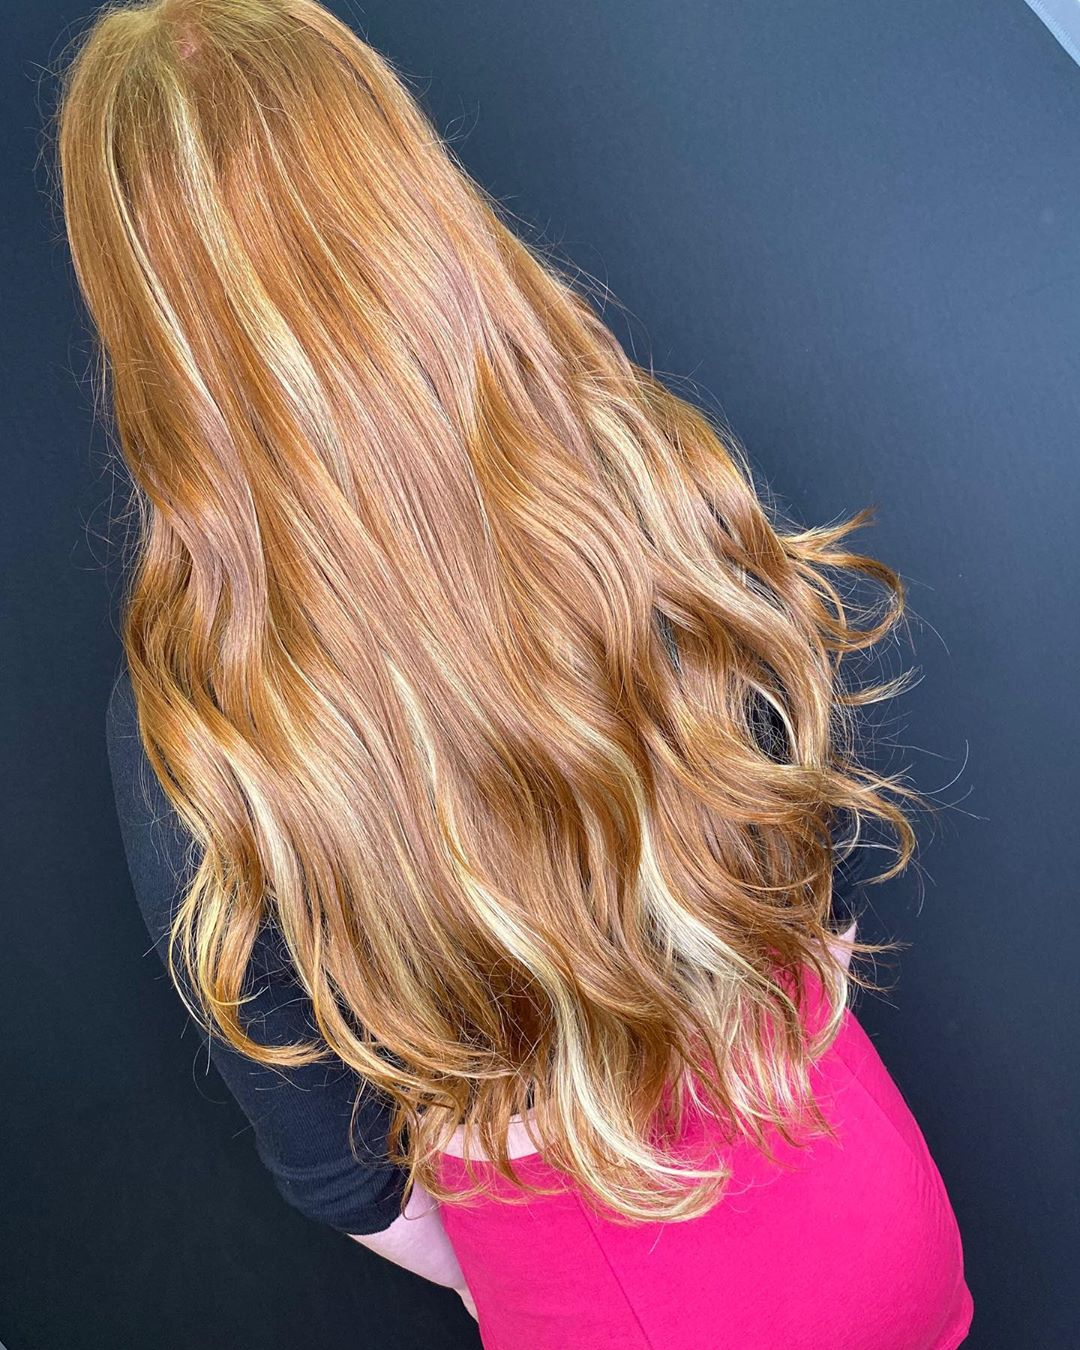 Caramel Brown with Rich Blonde Highlights